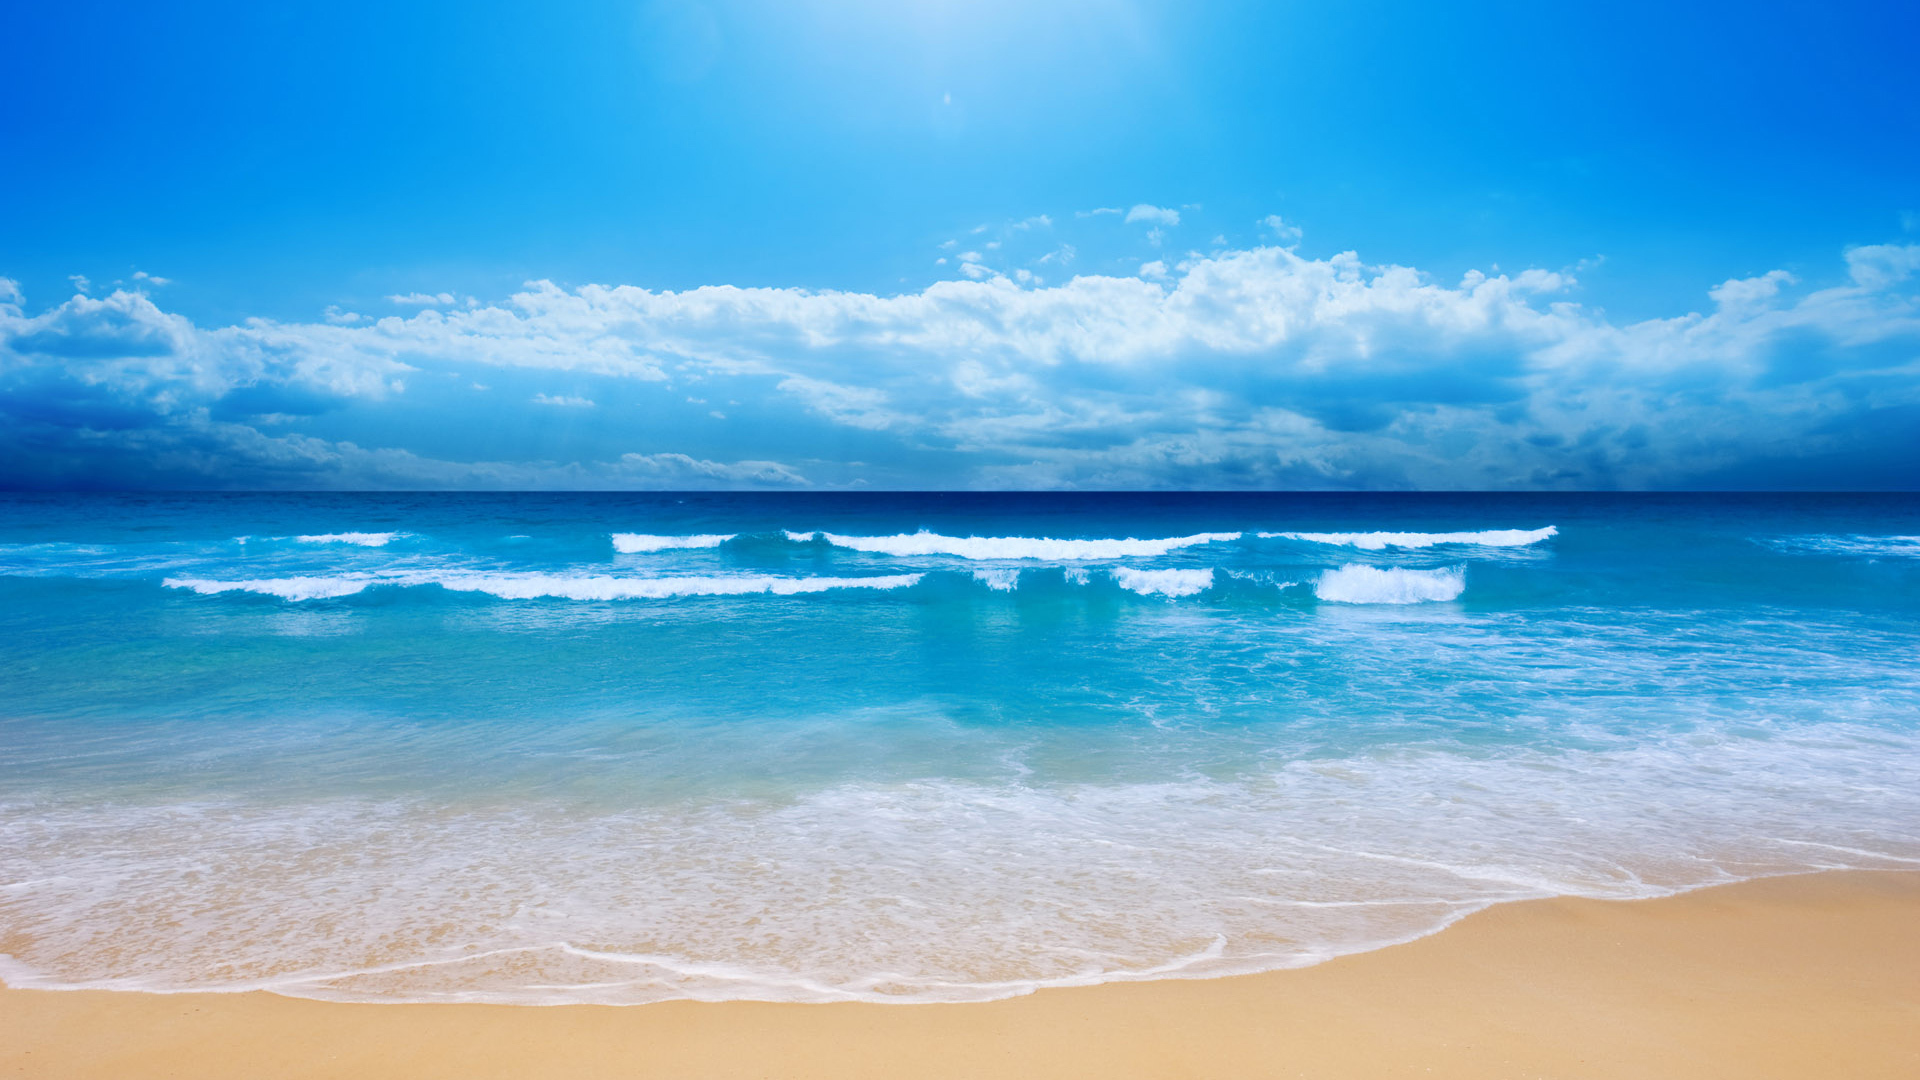 20562 download wallpaper Landscape, Sea, Clouds, Waves, Beach screensavers and pictures for free